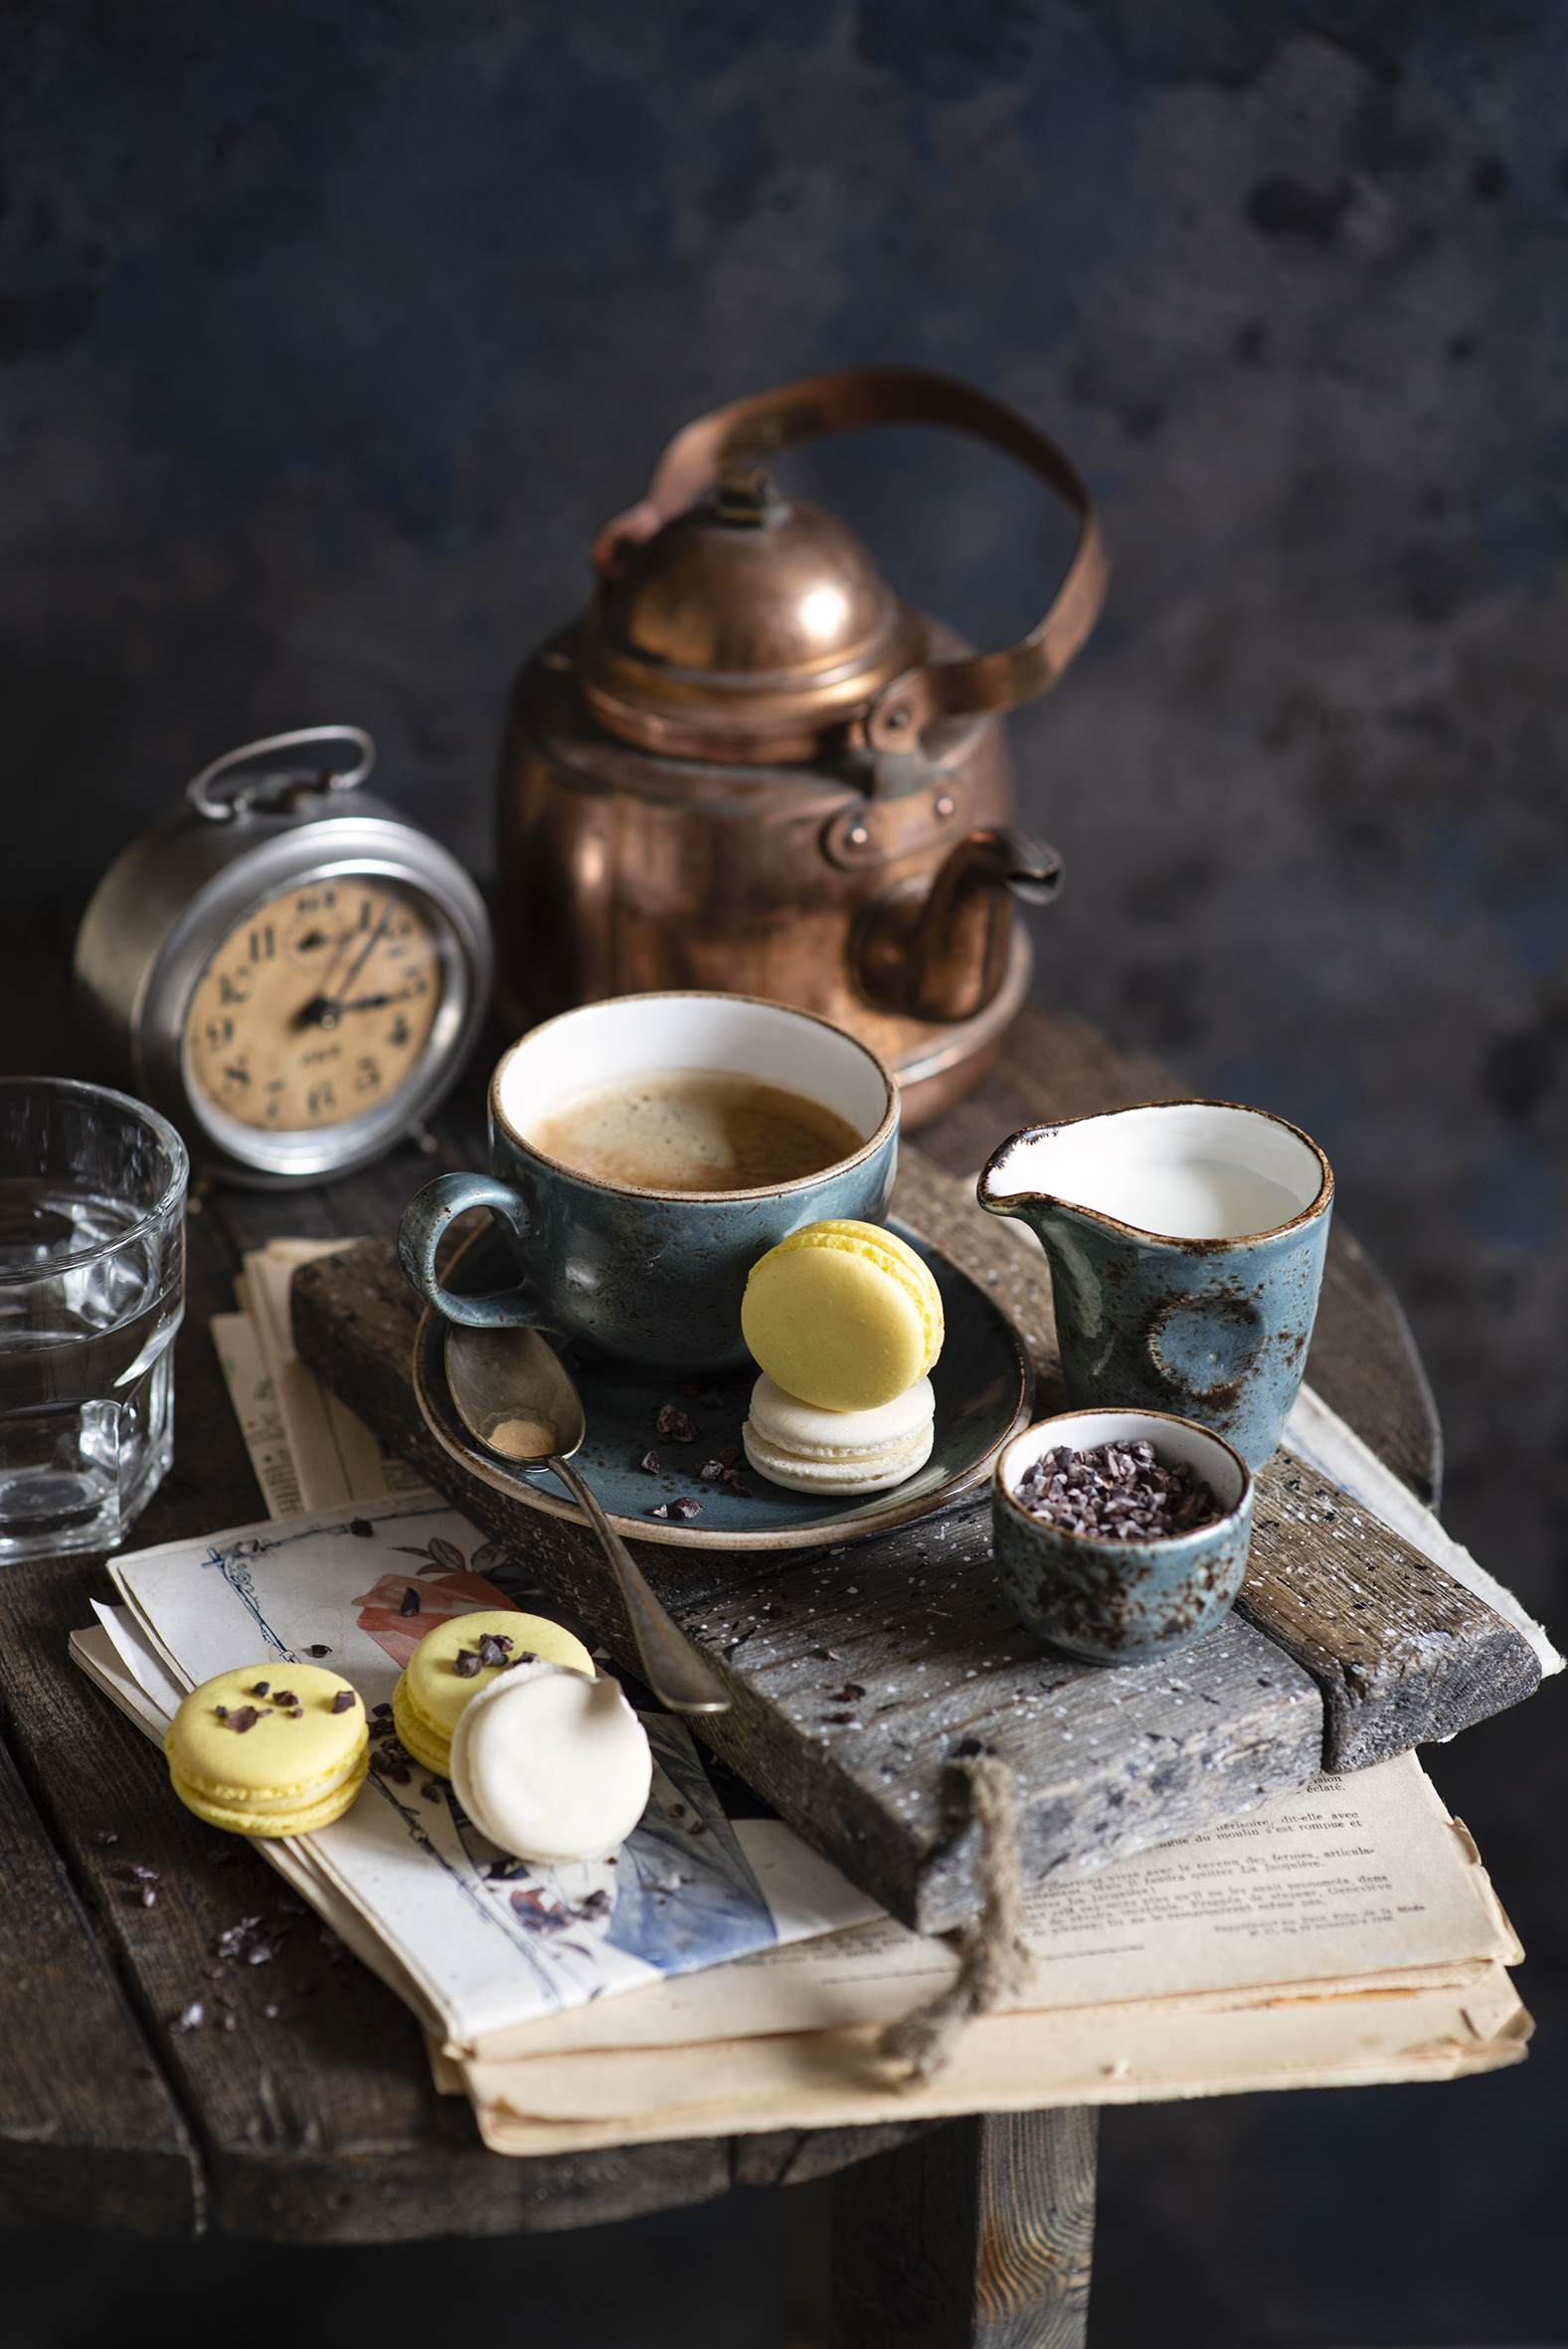 Photo Milk Macaron Clock Coffee Cappuccino Kettle Cup Food Still-life  for Mobile phone french macarons